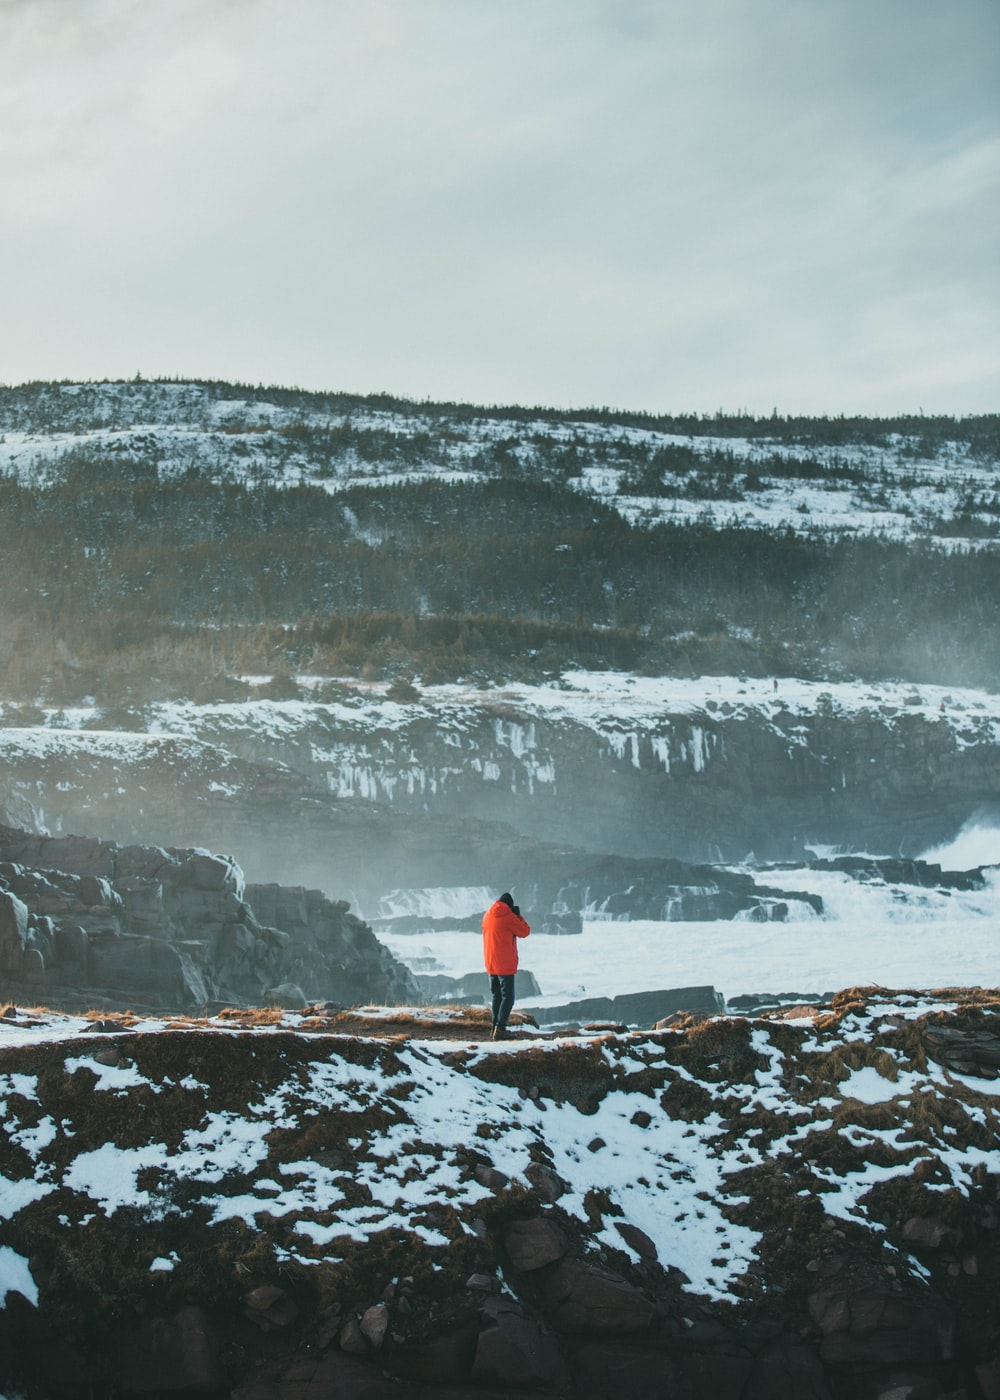 person in red jacket standing on snow covered ground during daytime